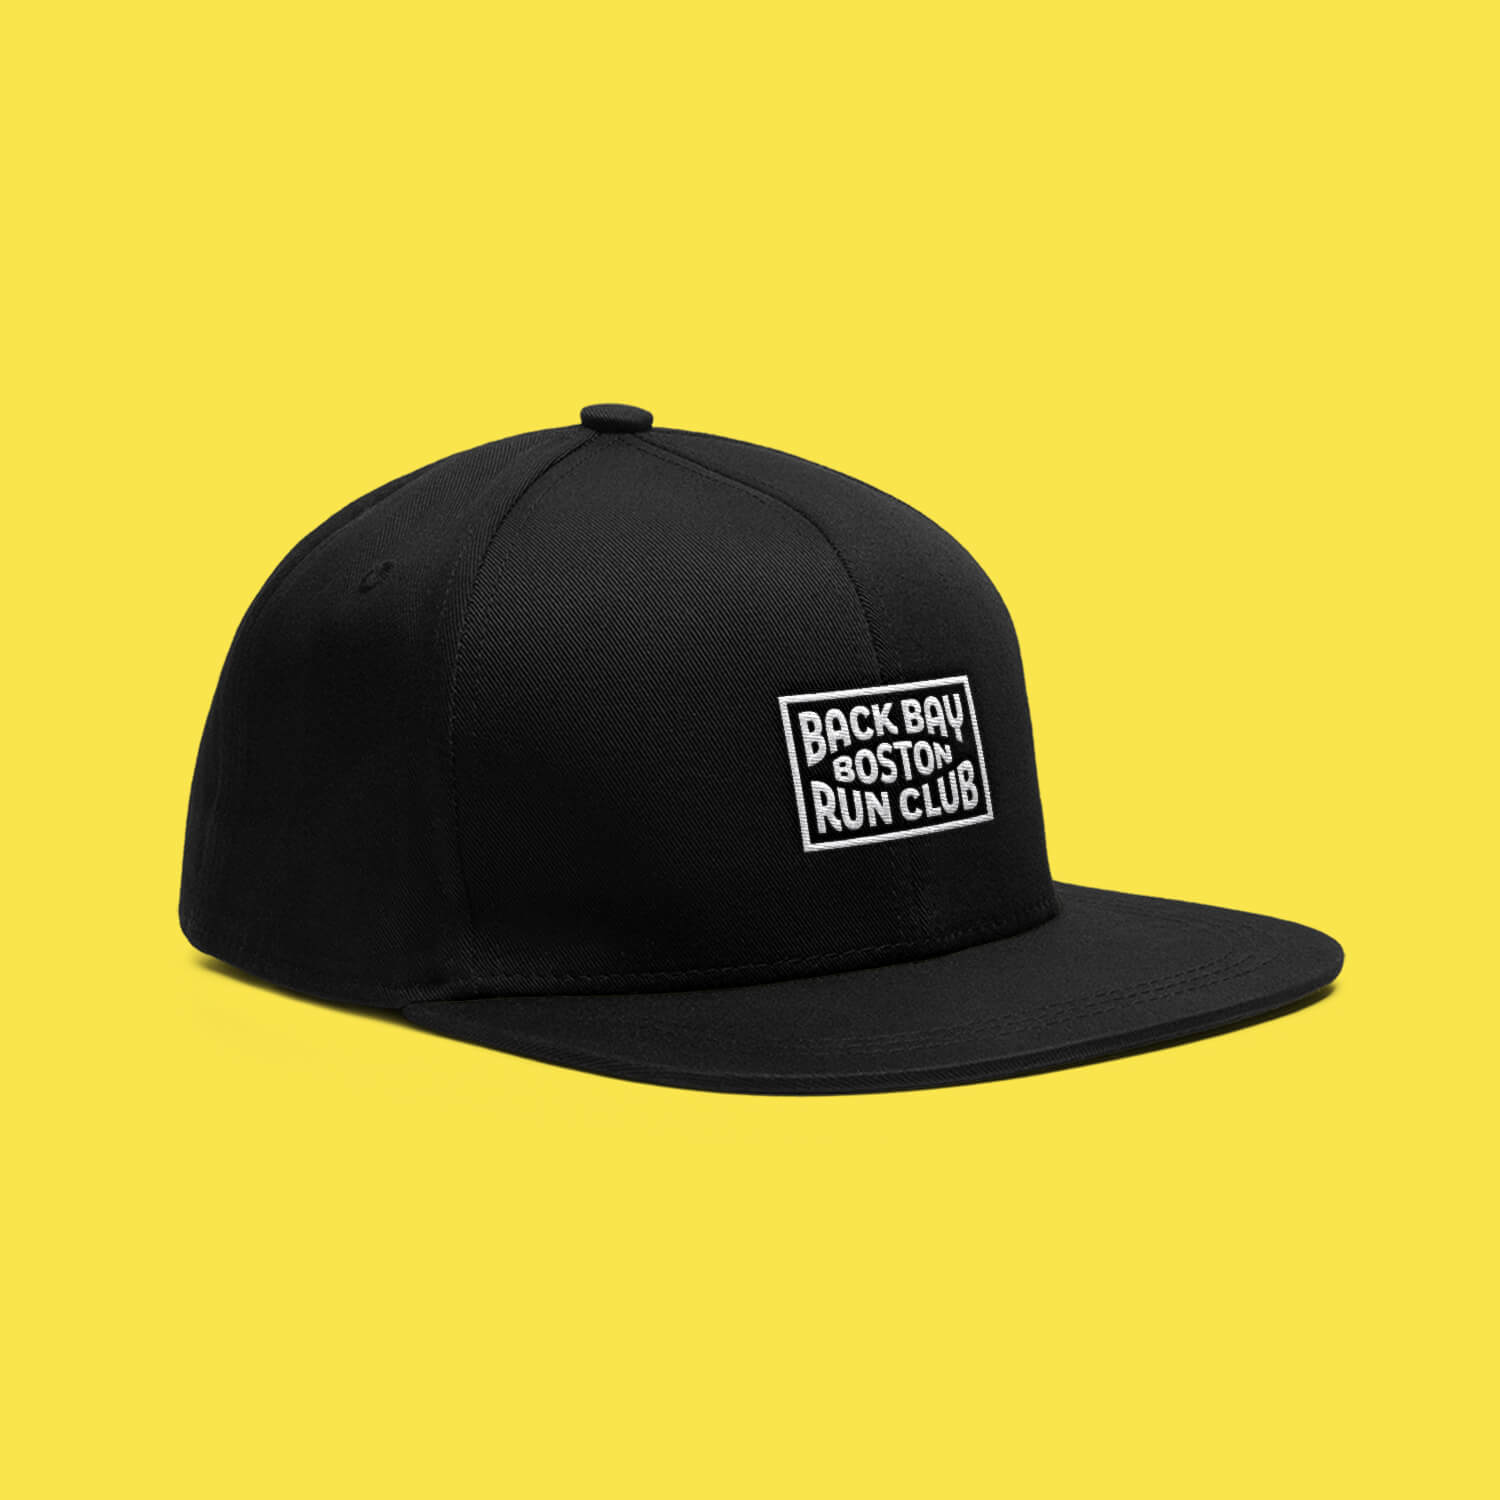 Black Back Bay Run Club snapback hat featuring a white patch